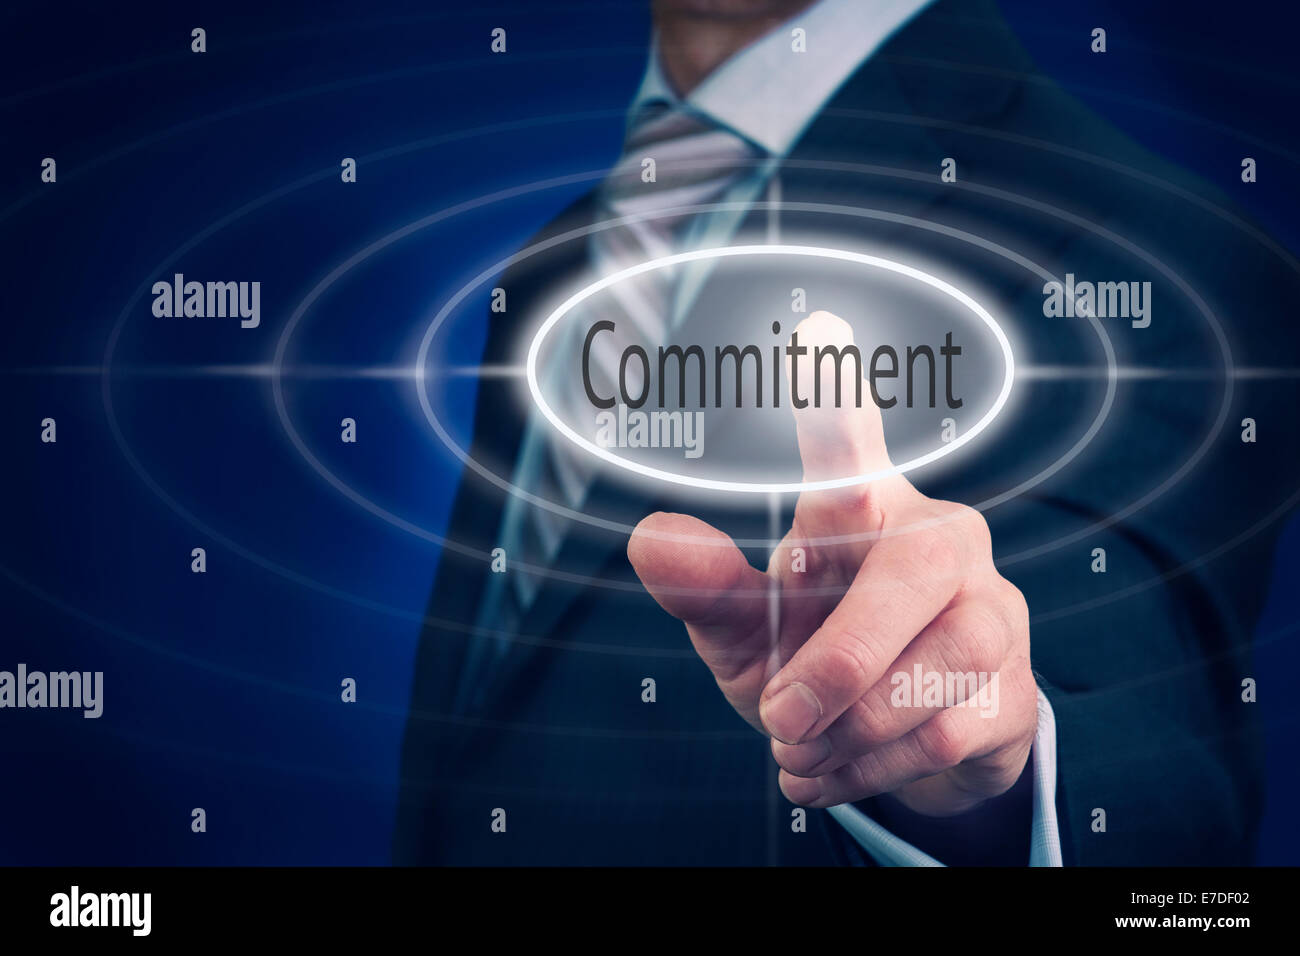 Businessman pressing a commitment concept button. - Stock Image